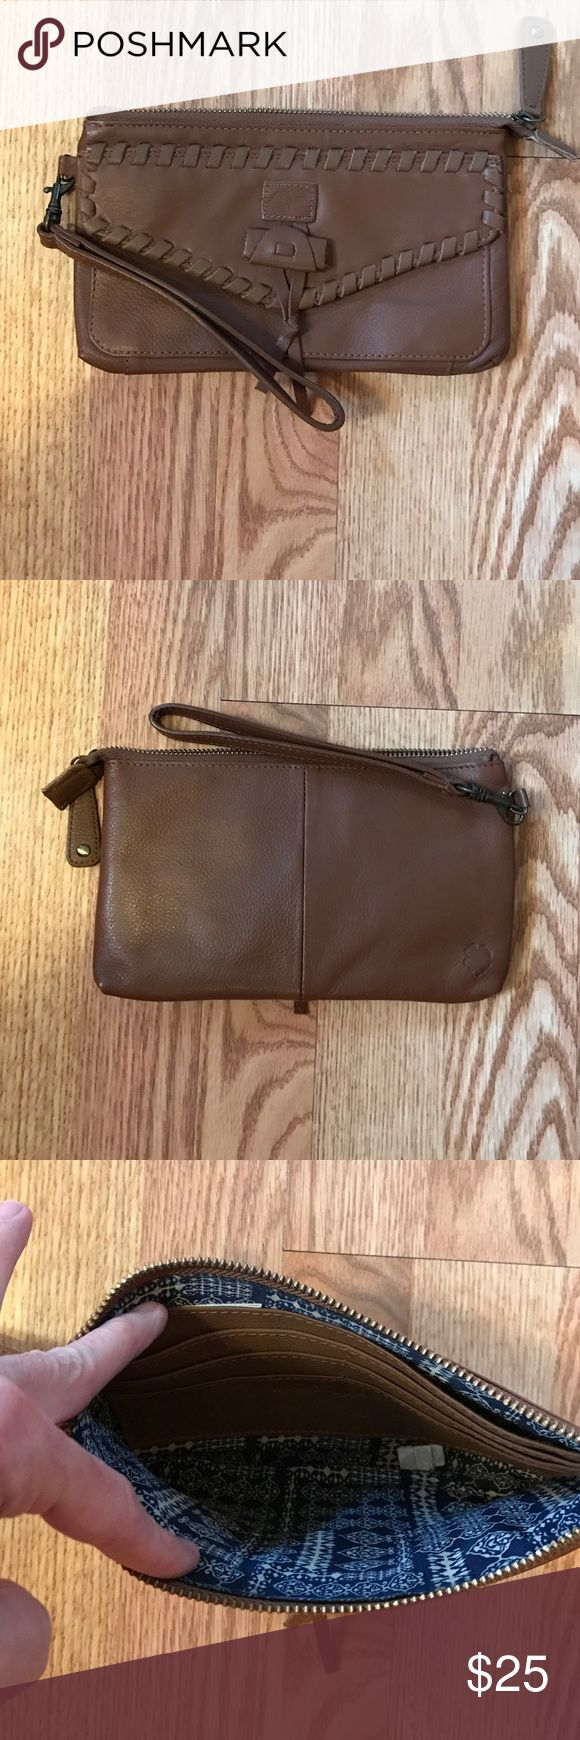 Lucky 🍀 Brand wallet Lucky 🍀 Brand wallet the front has a snap pocket and the inside has six slot for credit cards and ID. And has two separate compartments inside the wallet. In excellent condition. Never used. Lucky Brand Bags Wallets